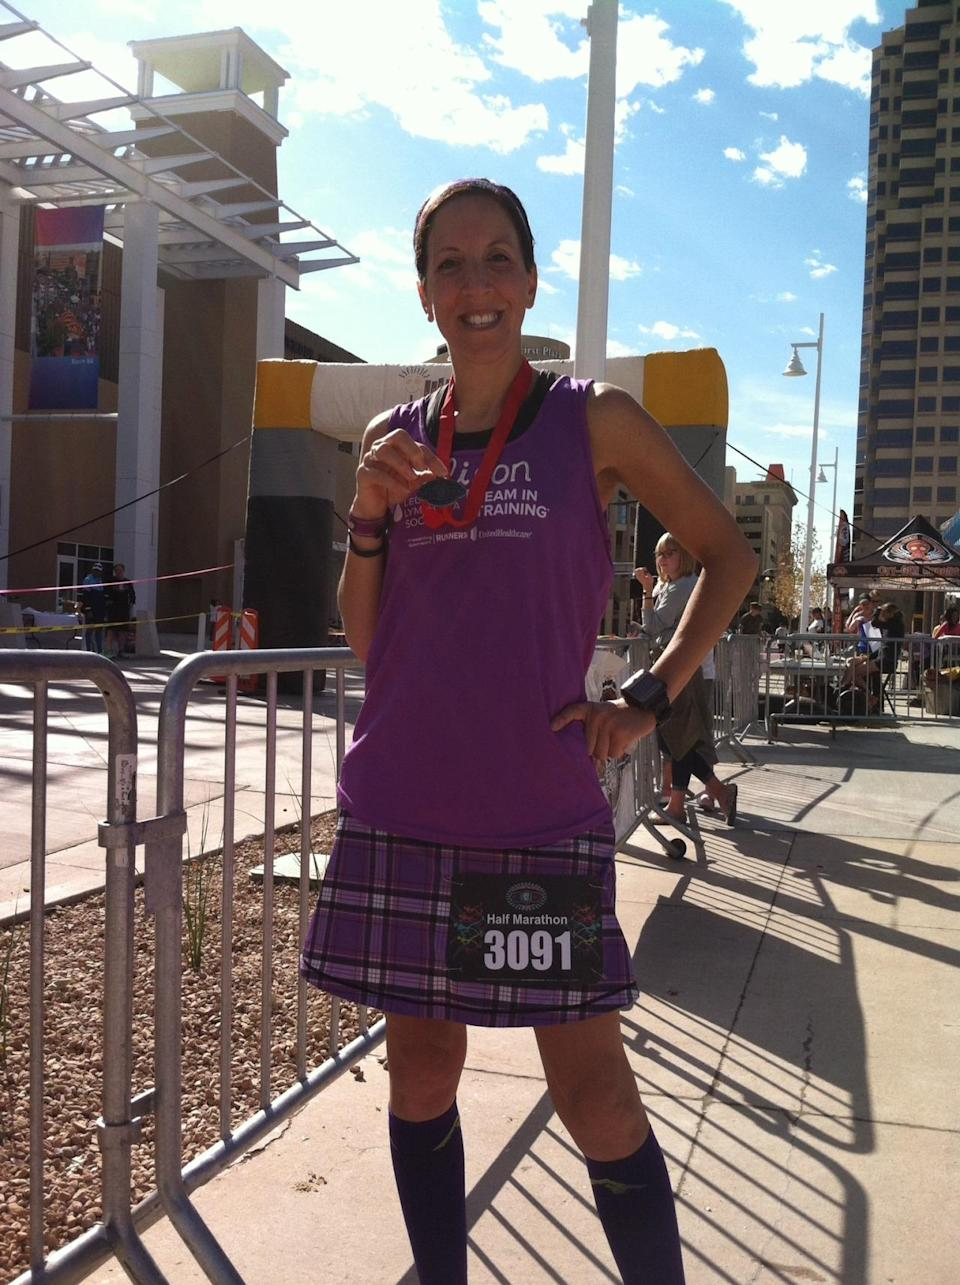 """<p>In 2006, I got a pamphlet in the mail that read, """"Do A Marathon; Cure Cancer."""" Sounded pretty good to me, especially because my friend was battling cancer. So I, a novice athlete at best, joined the Leukemia and Lymphoma Society's <a href=""""http://www.teamintraining.org/"""" rel=""""nofollow noopener"""" target=""""_blank"""" data-ylk=""""slk:Team in Training"""" class=""""link rapid-noclick-resp"""">Team in Training</a>. I thought it would be my only marathon ever, but I've now finished 19!</p><p><i>—Alison O'Brien, 43, Union, New Jersey . Finisher of 18 full marathons and 50 half marathons; raised $14,000 to date for the <a href=""""http://www.teamintraining.org/"""" rel=""""nofollow noopener"""" target=""""_blank"""" data-ylk=""""slk:Leukemia and Lymphoma Society"""" class=""""link rapid-noclick-resp"""">Leukemia and Lymphoma Society</a>.</i></p>"""